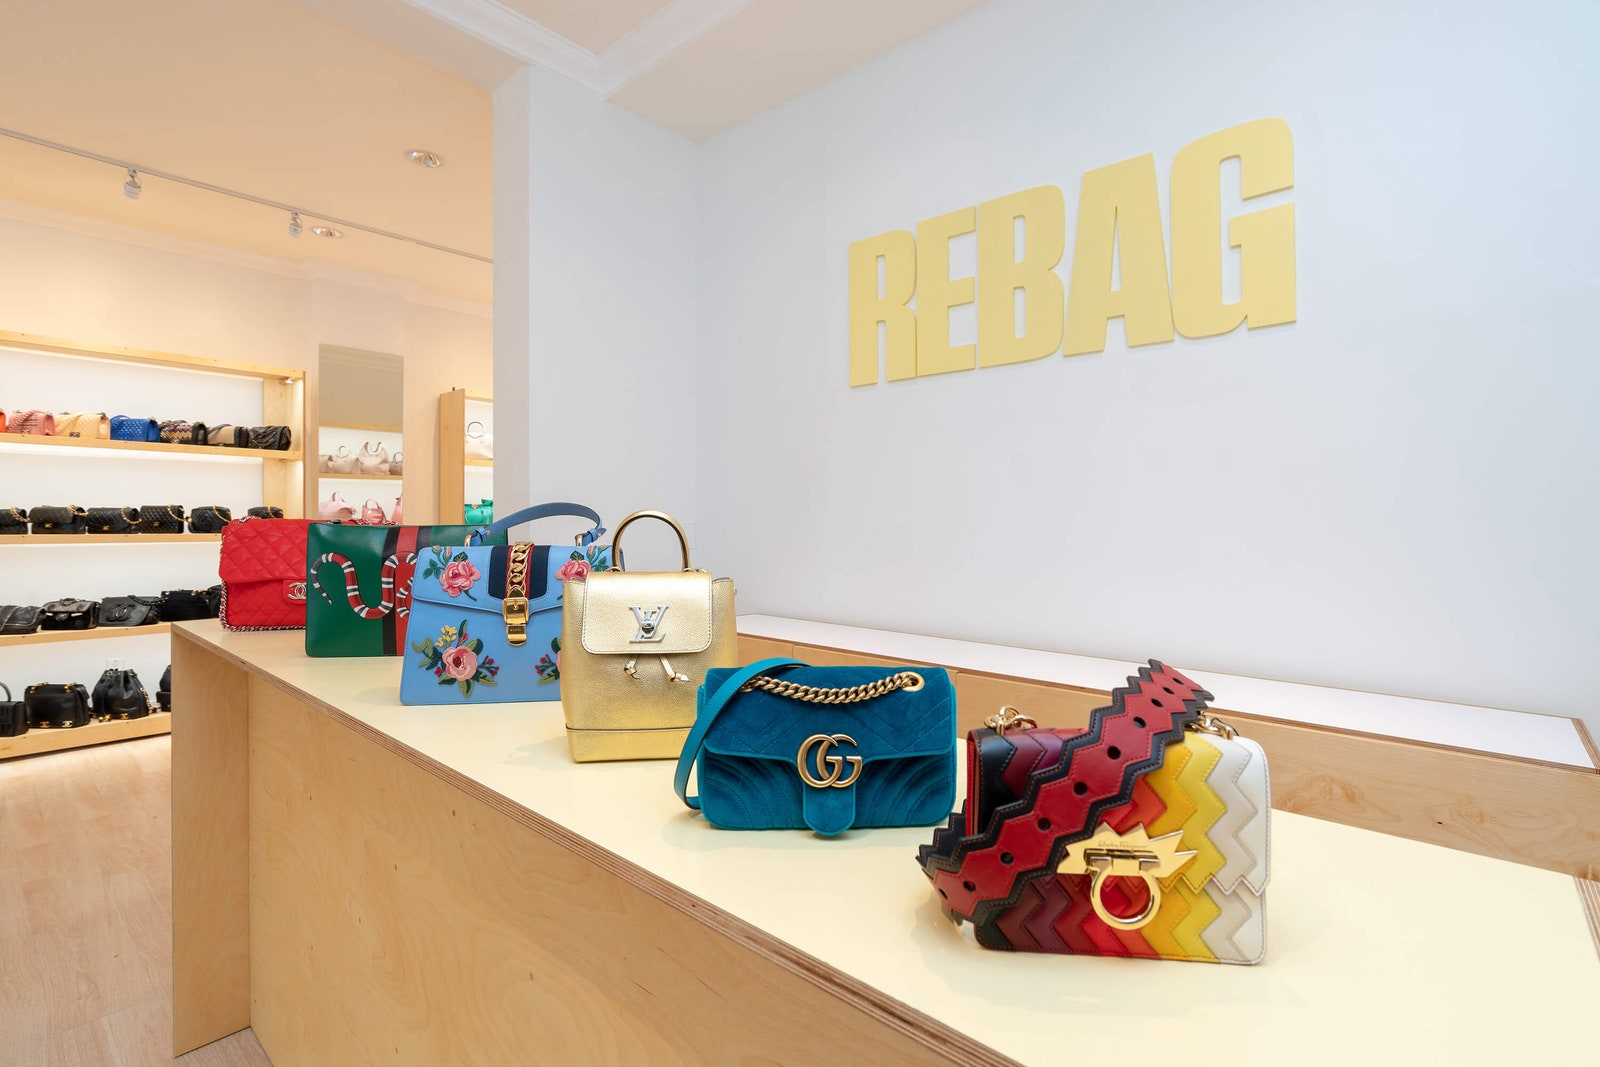 Designer handbags by Gucci, Louis Vuitton and Chanel merchandised in a store setting